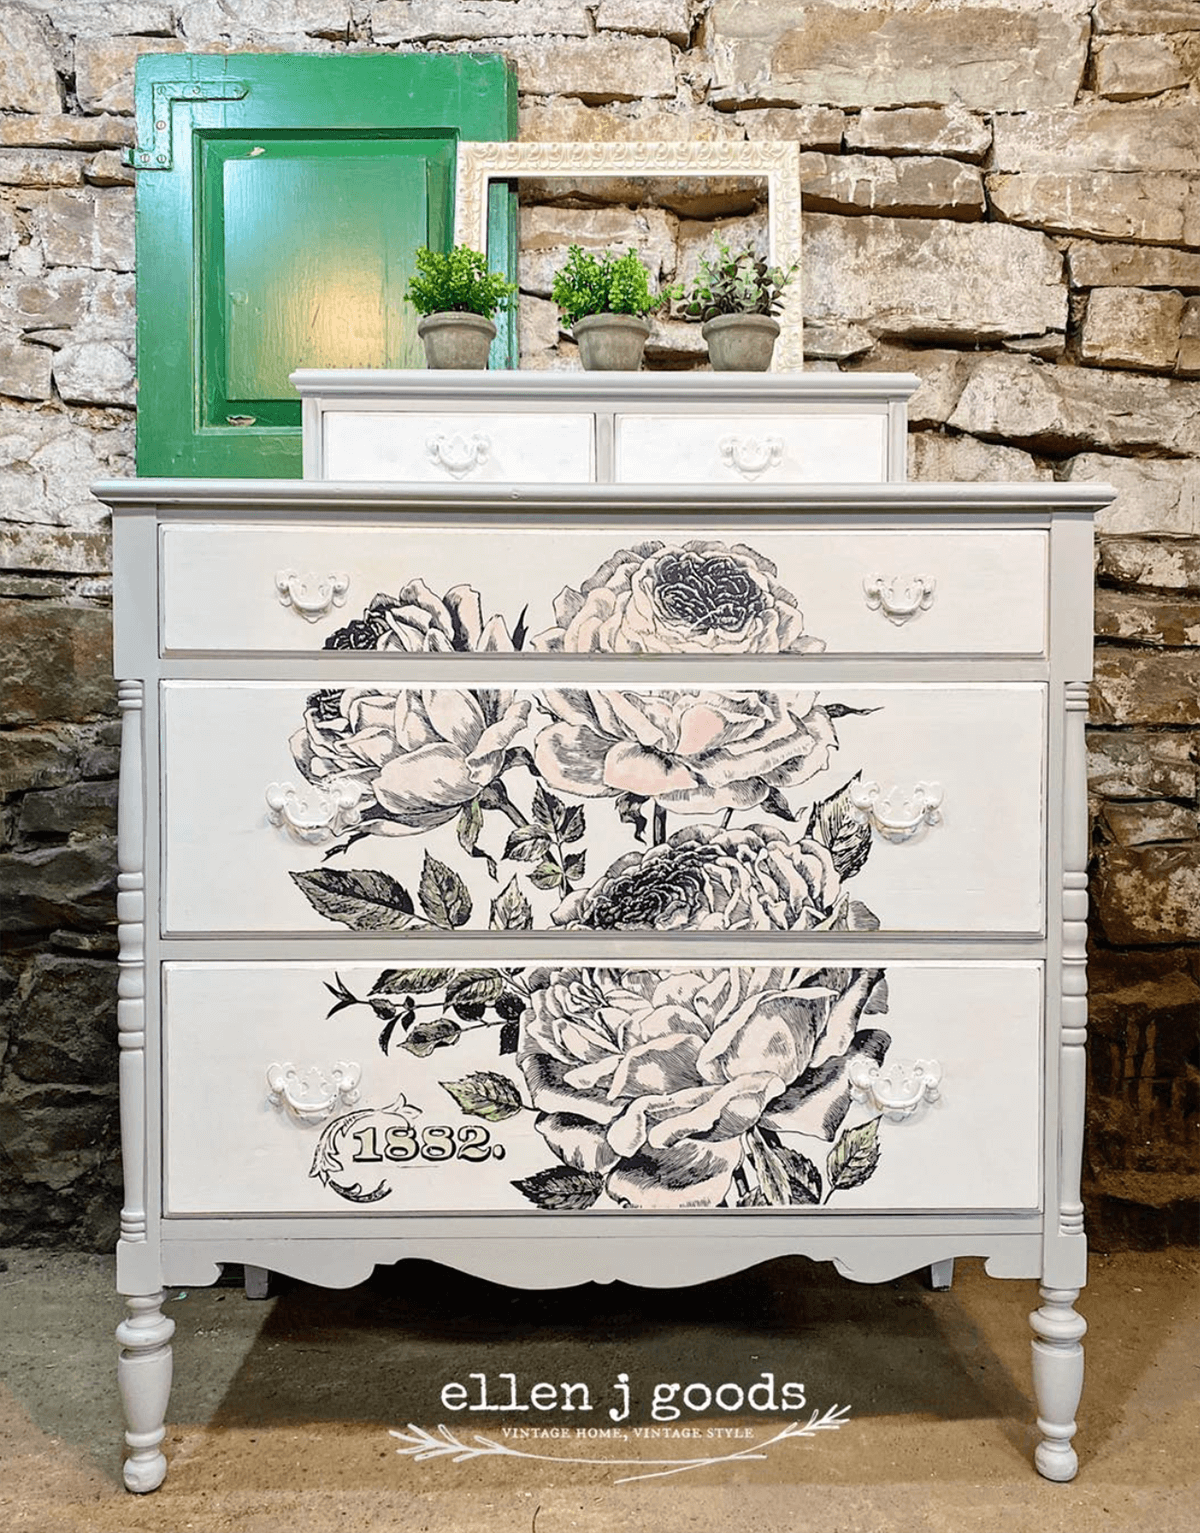 Boho Chic Vintage with Floral Print Drawers